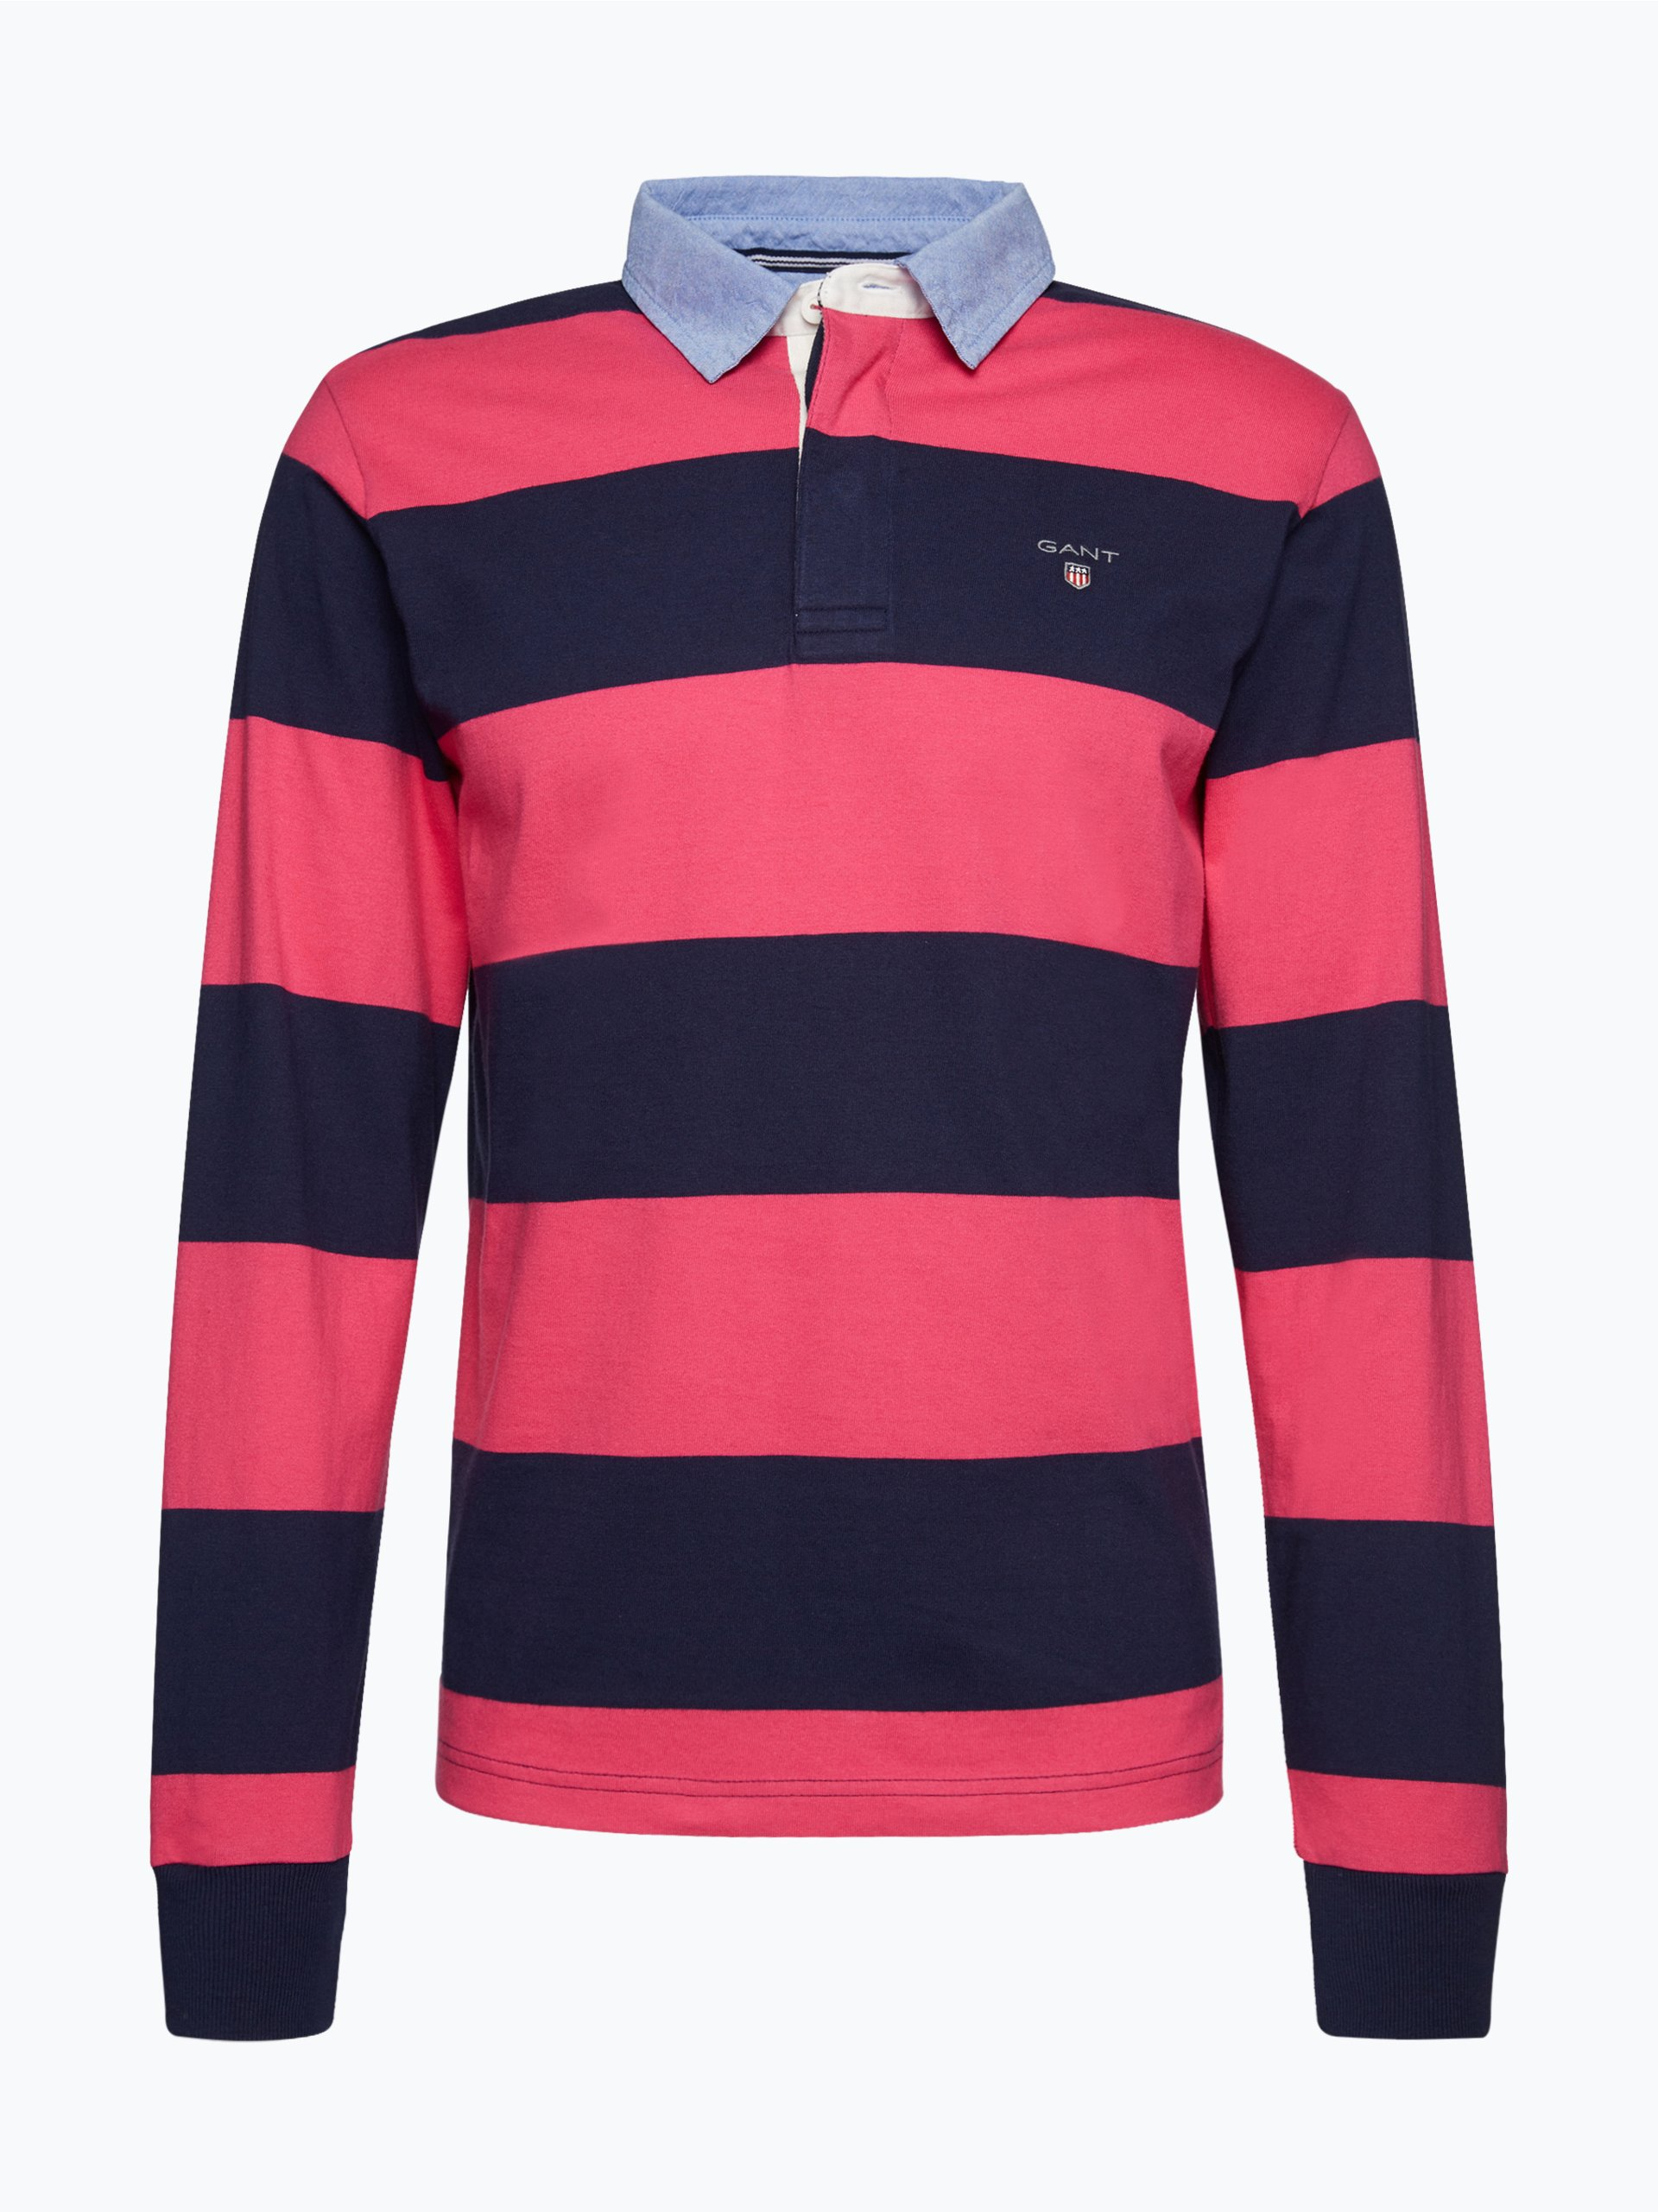 gant herren rugbyshirt pink gestreift online kaufen peek. Black Bedroom Furniture Sets. Home Design Ideas